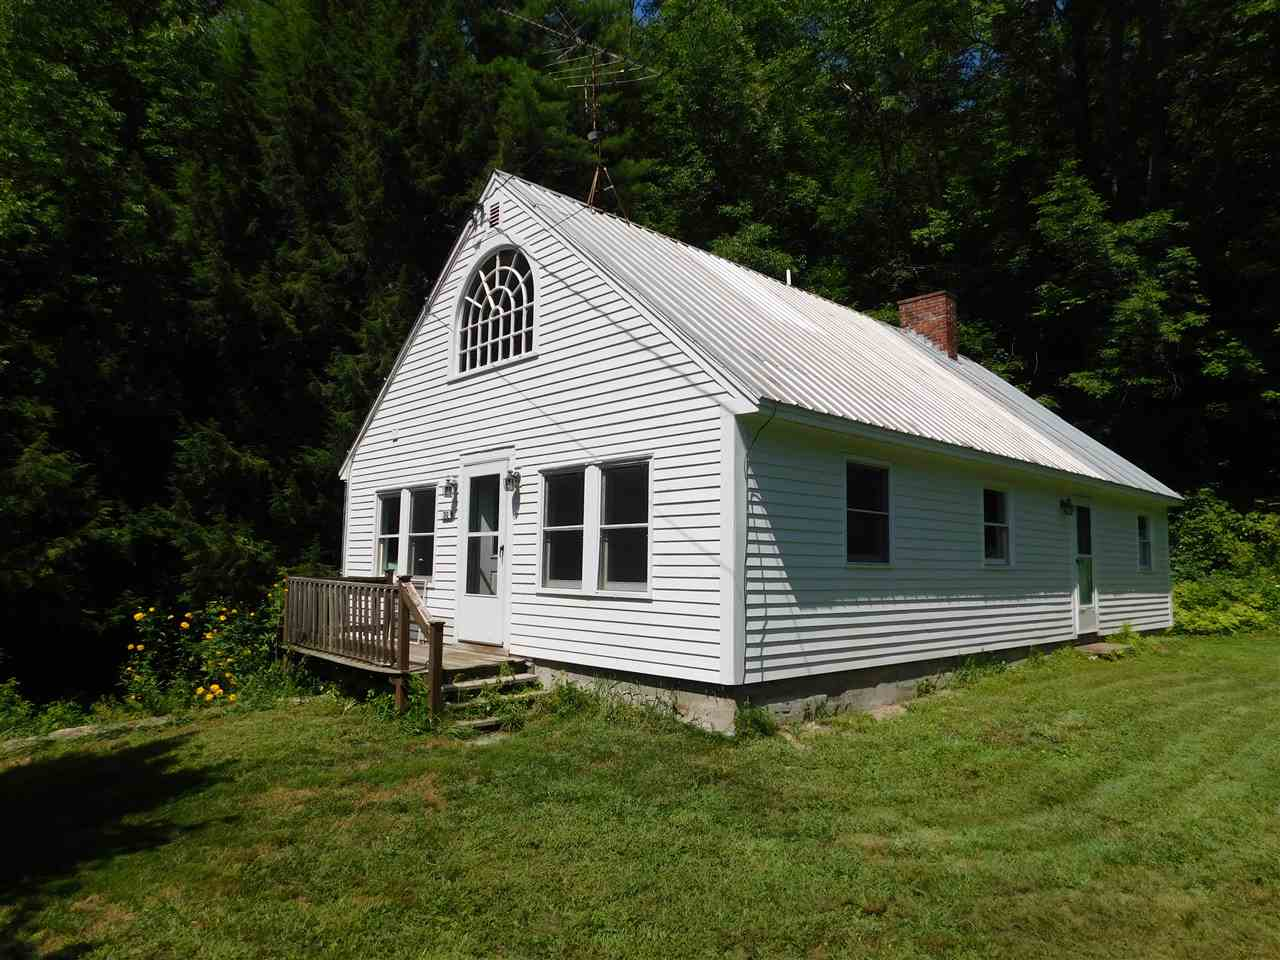 MLS 4770814: 30 Shoestrap Road, Lyme NH